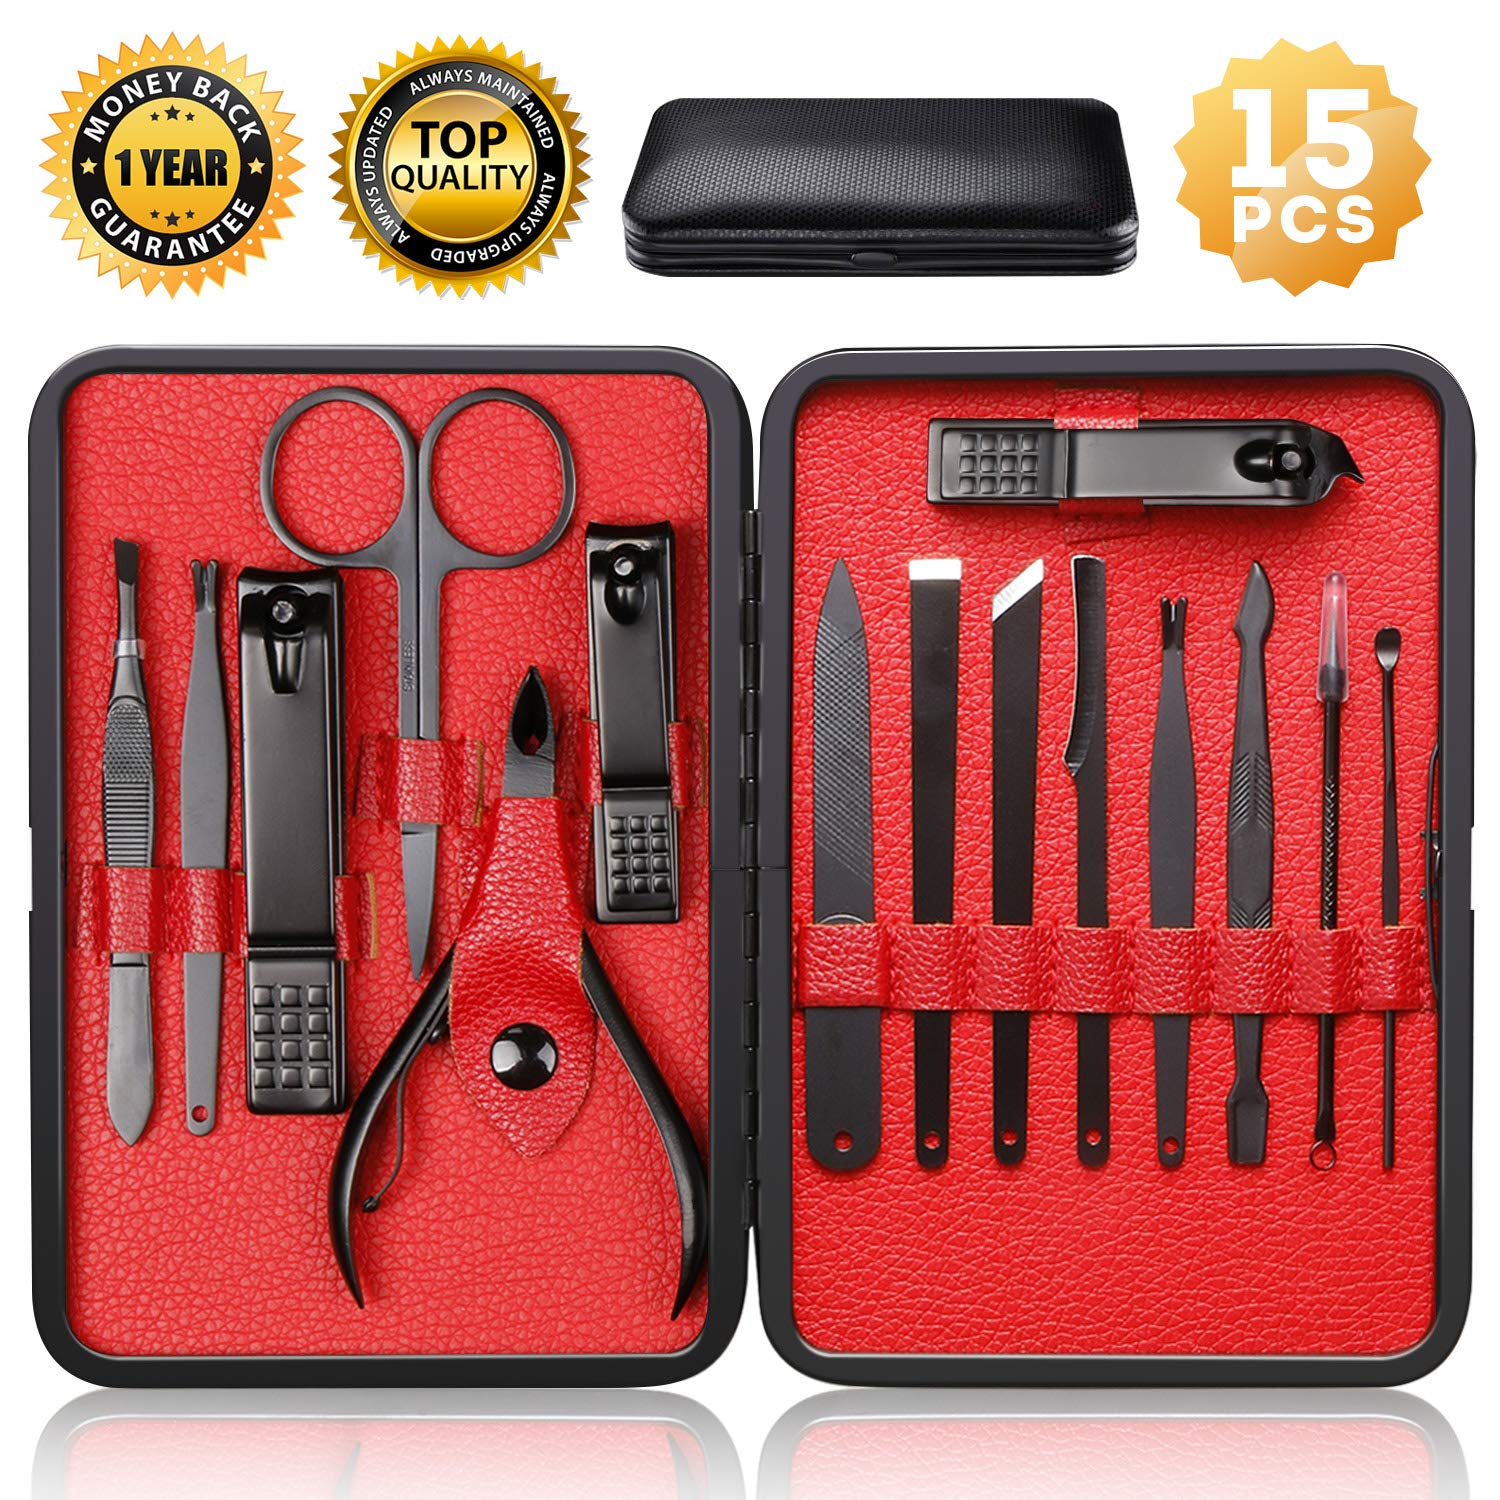 Nail Clippers Sets High Precisio Stainless Steel Nail Cutter Pedicure Kit Nail File Sharp Nail Scissors and Clipper Manicure Pedicure Kit Fingernails & Toenails with Portable stylish case (Black) by QLNE